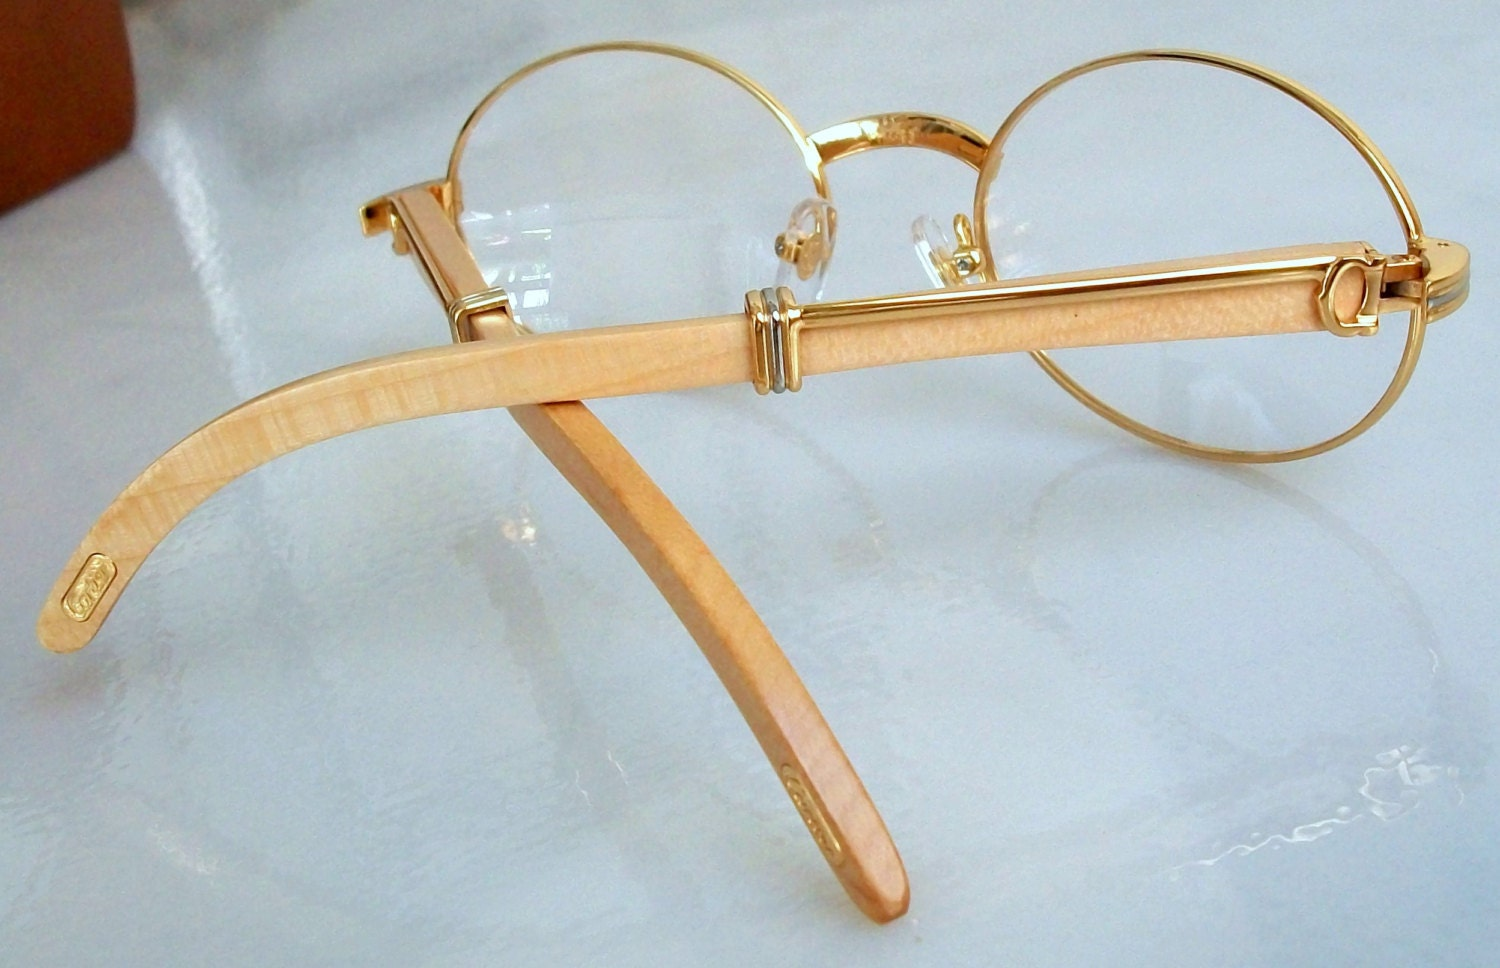 Gold And Silver Eyeglass Frames : Eyeglasses Gold Oval Frame Light Wood Temples Silver details.